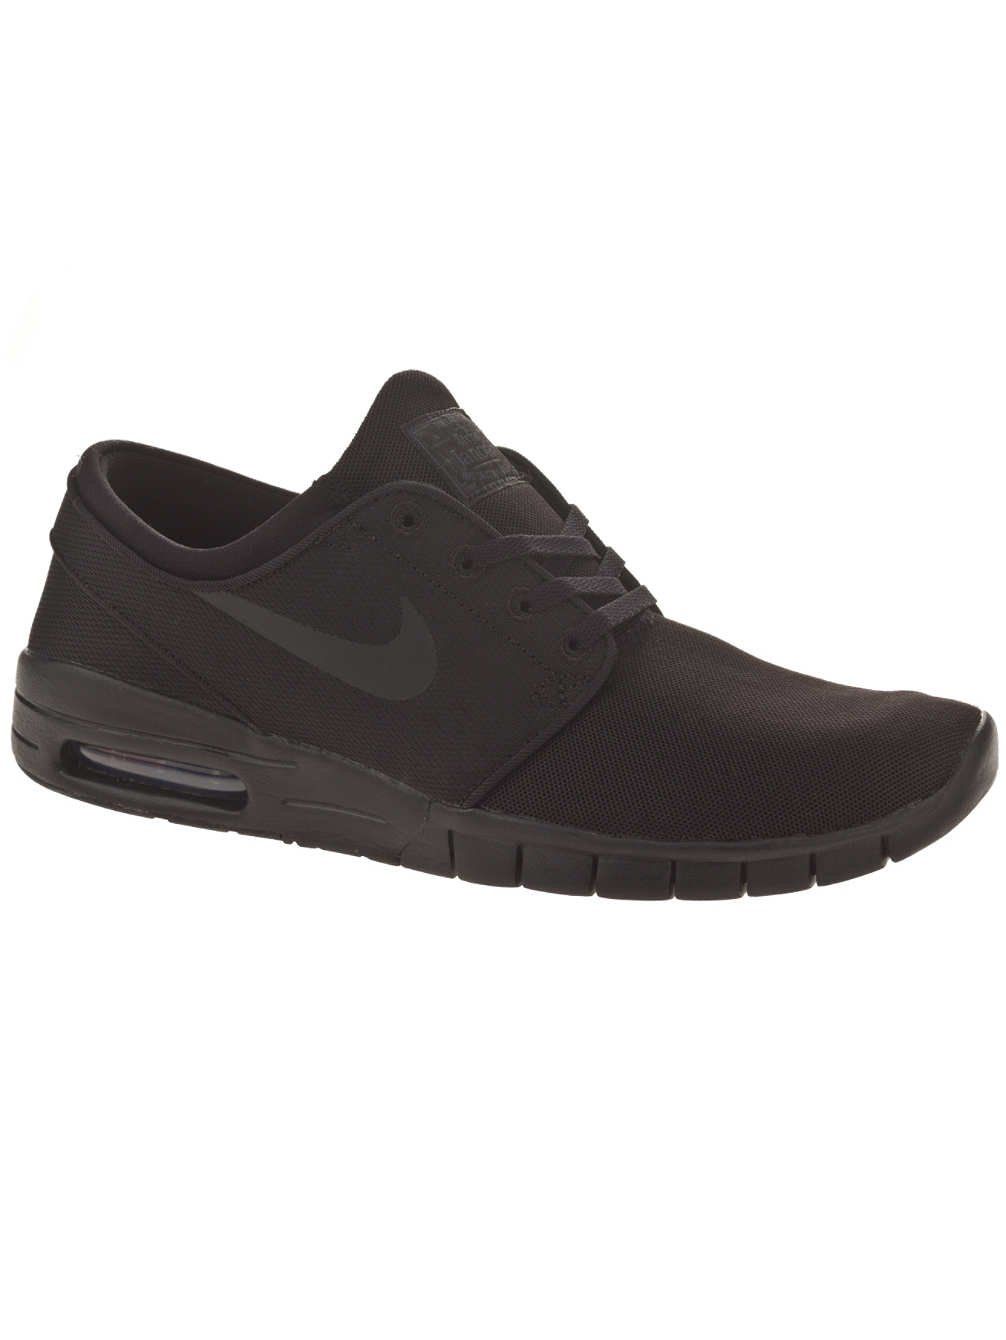 reputable site 14ee3 aea02 Galleon - Nike Stefan Janoski Max Mens Sneakers, Black Black Anthracite, 8.5  D(M) US